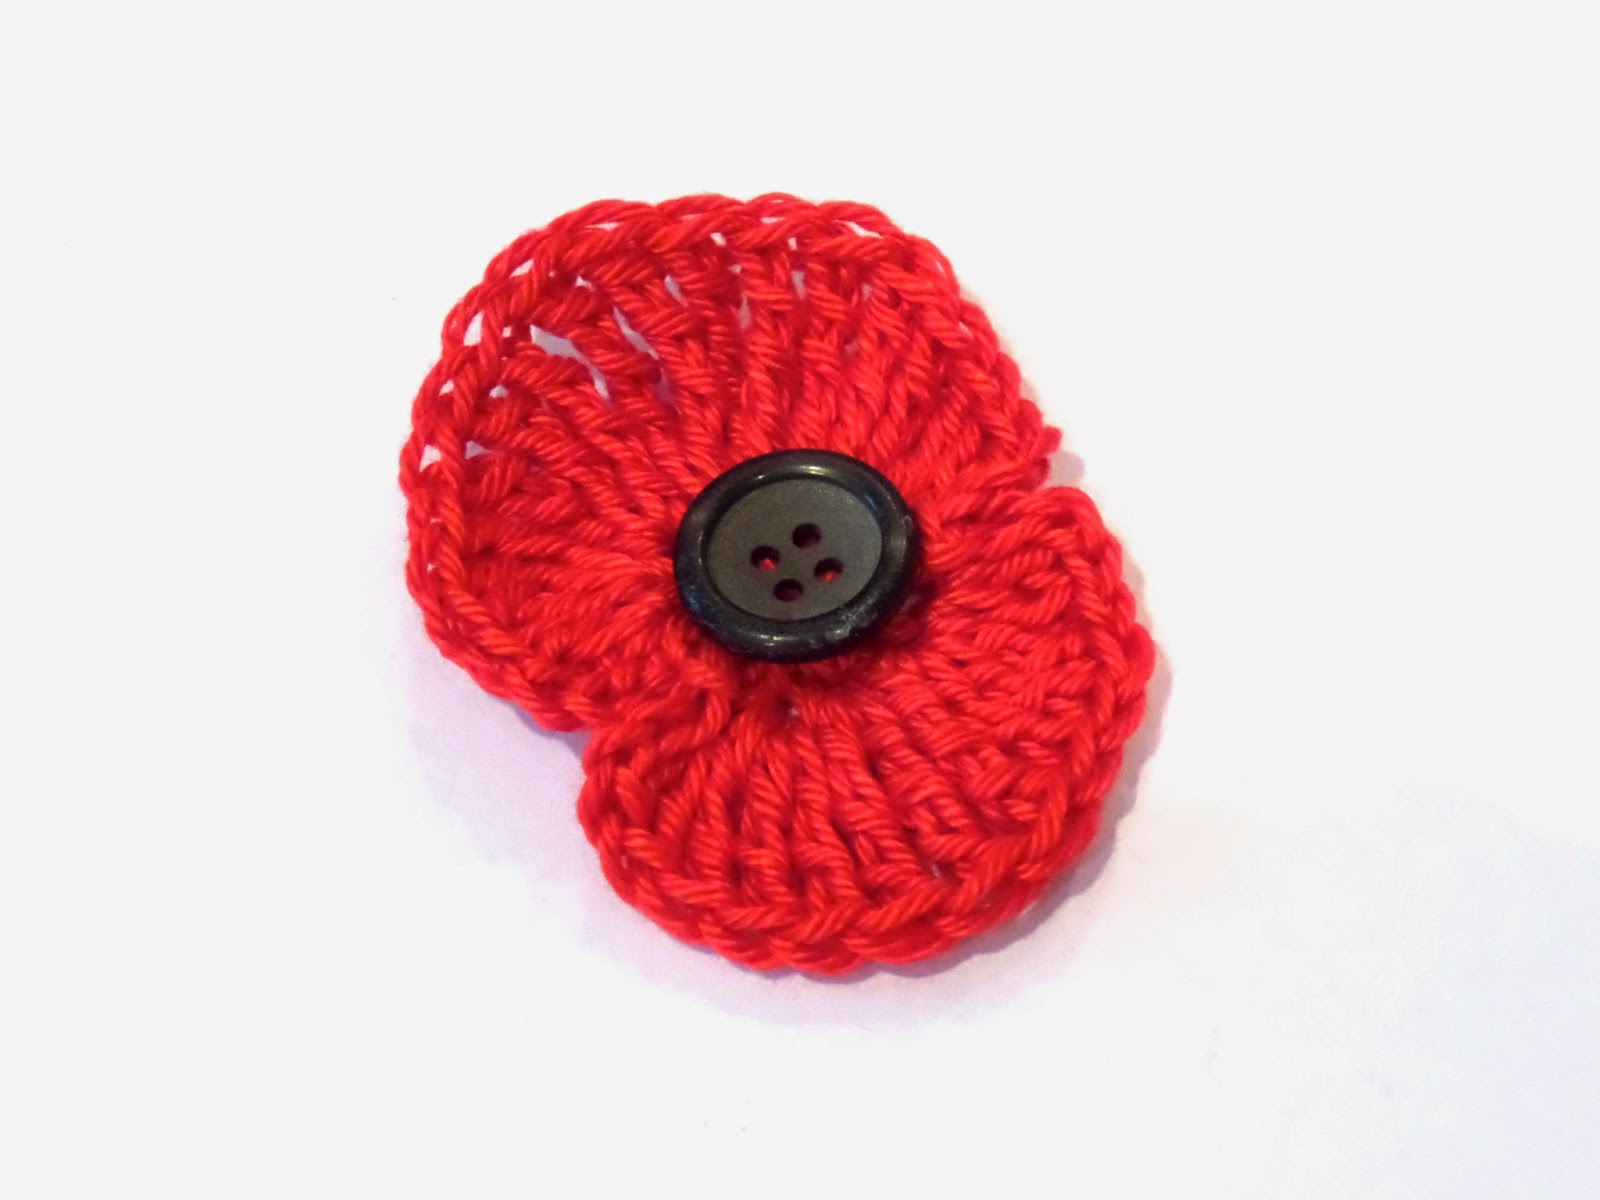 crochet poppy pattern free